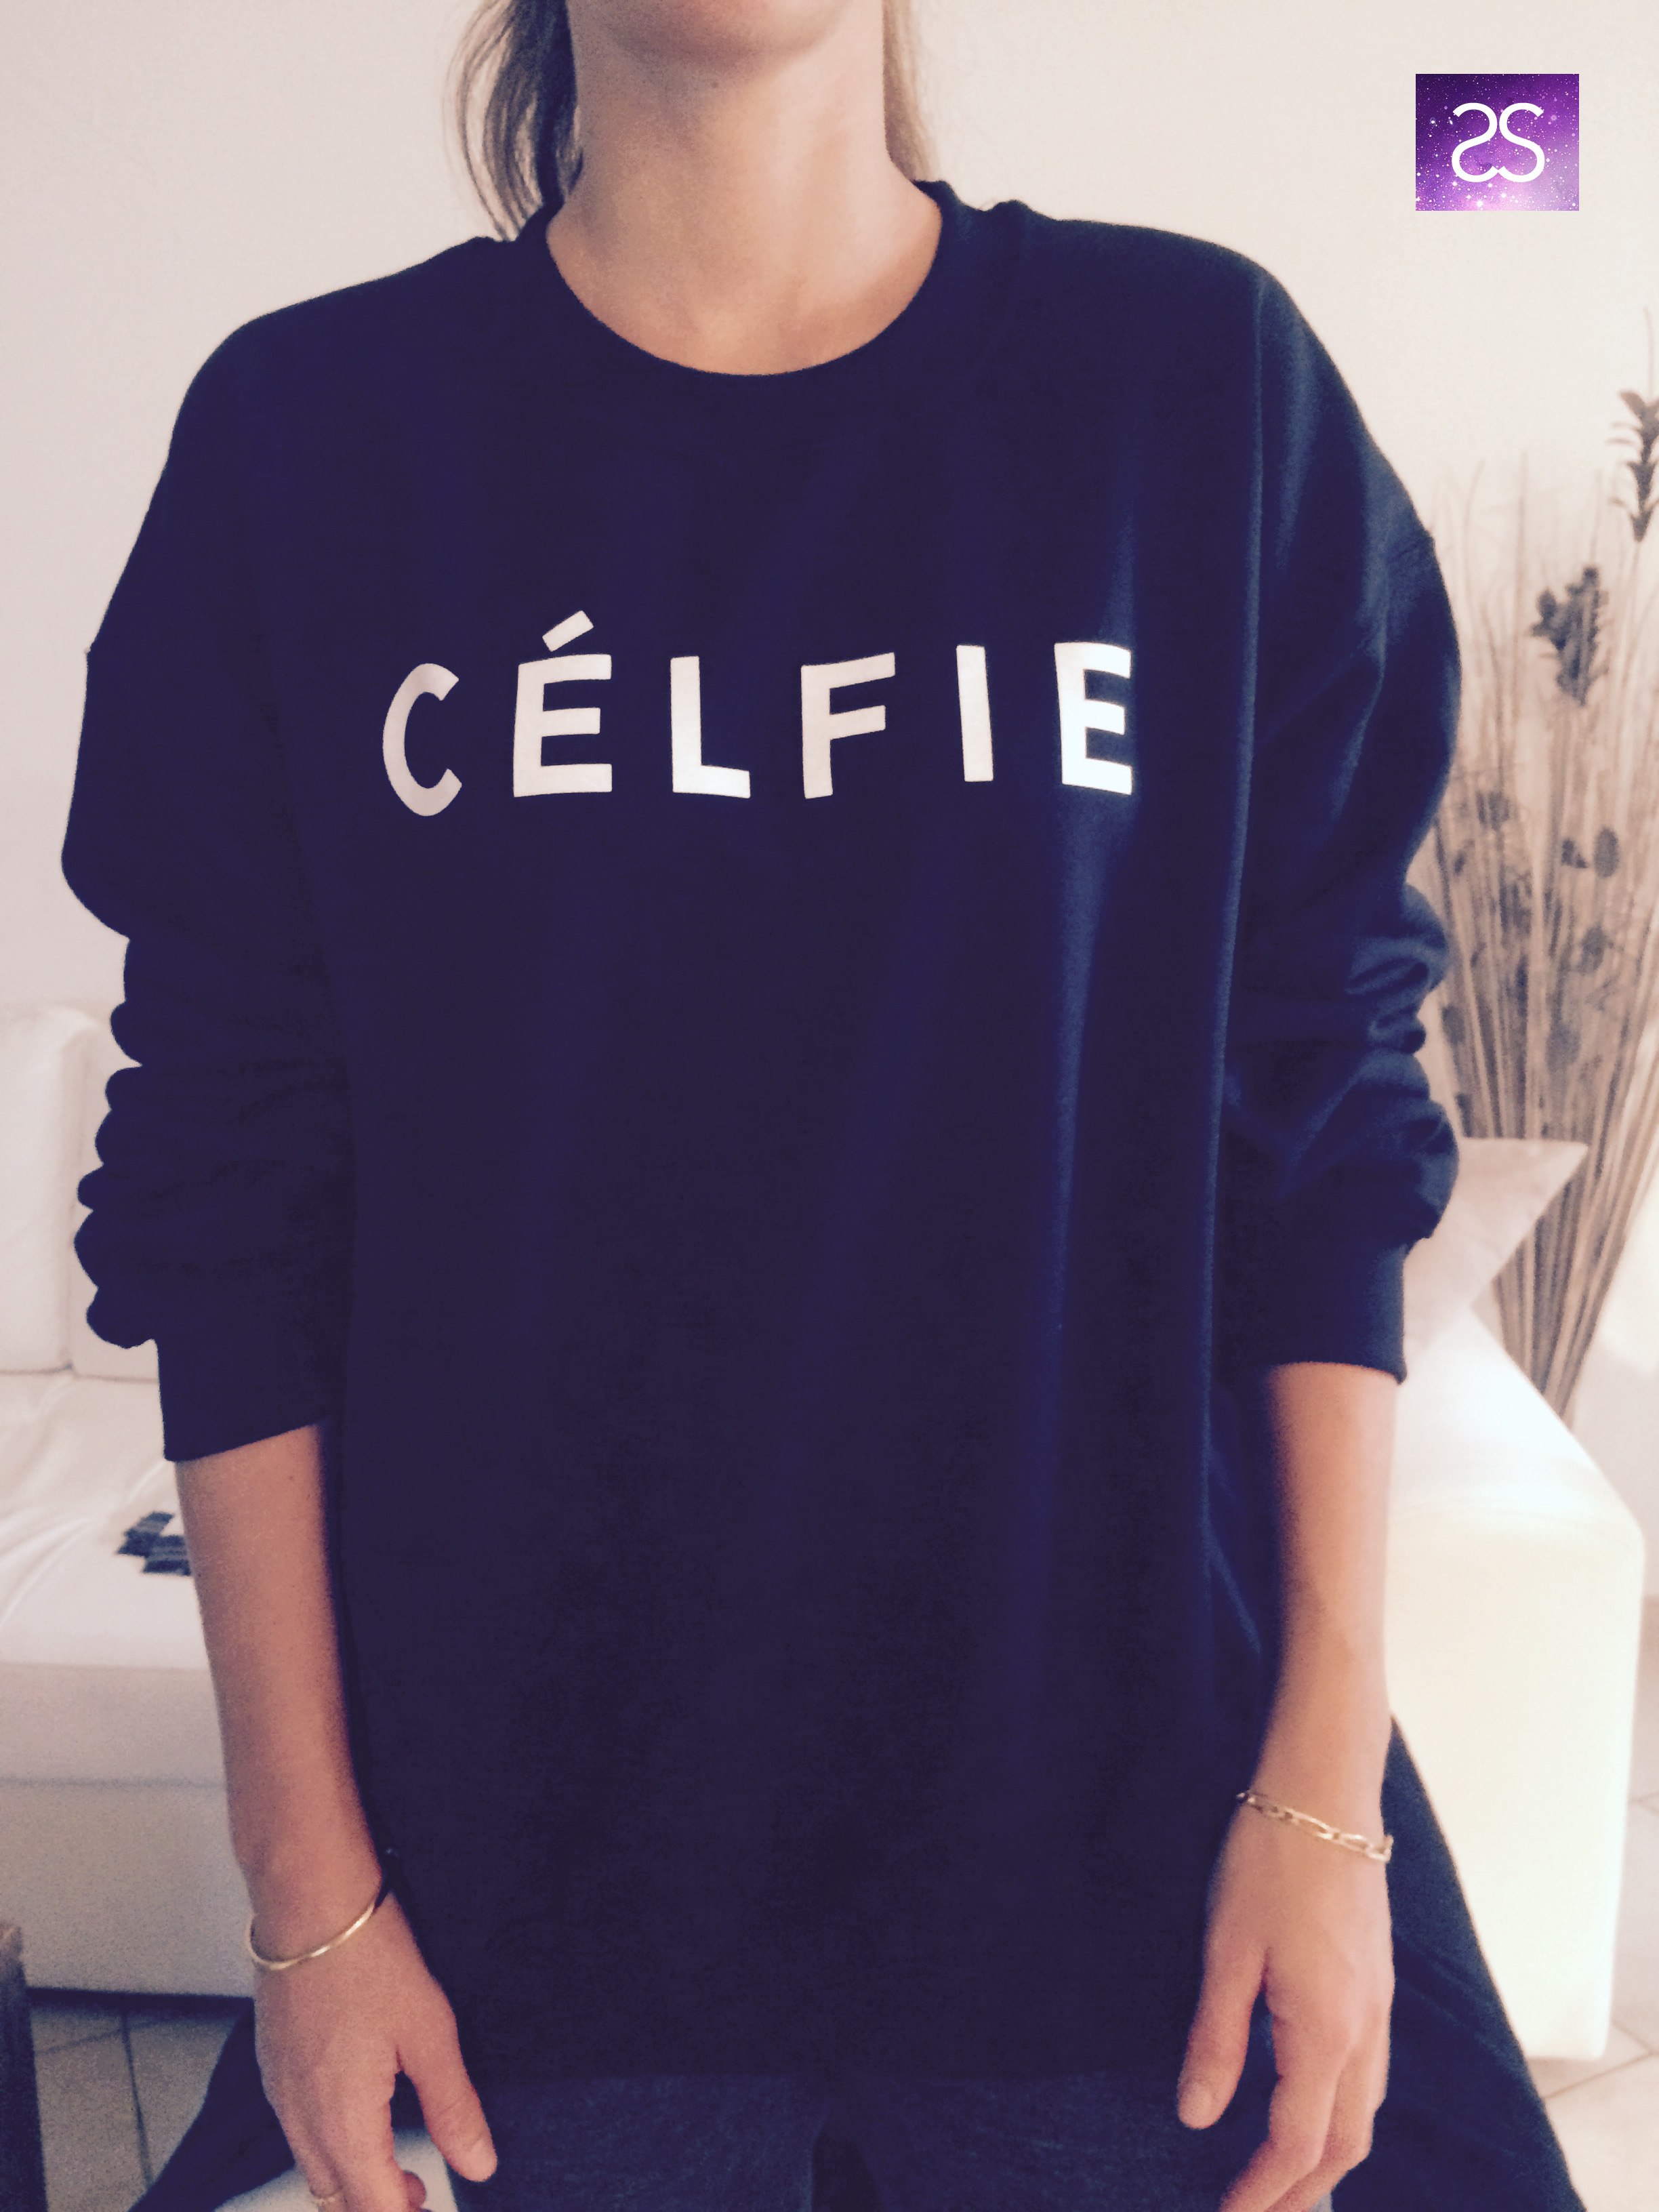 Celfie sweatshirt jumper cool fashion sweatshirts girls women unisex